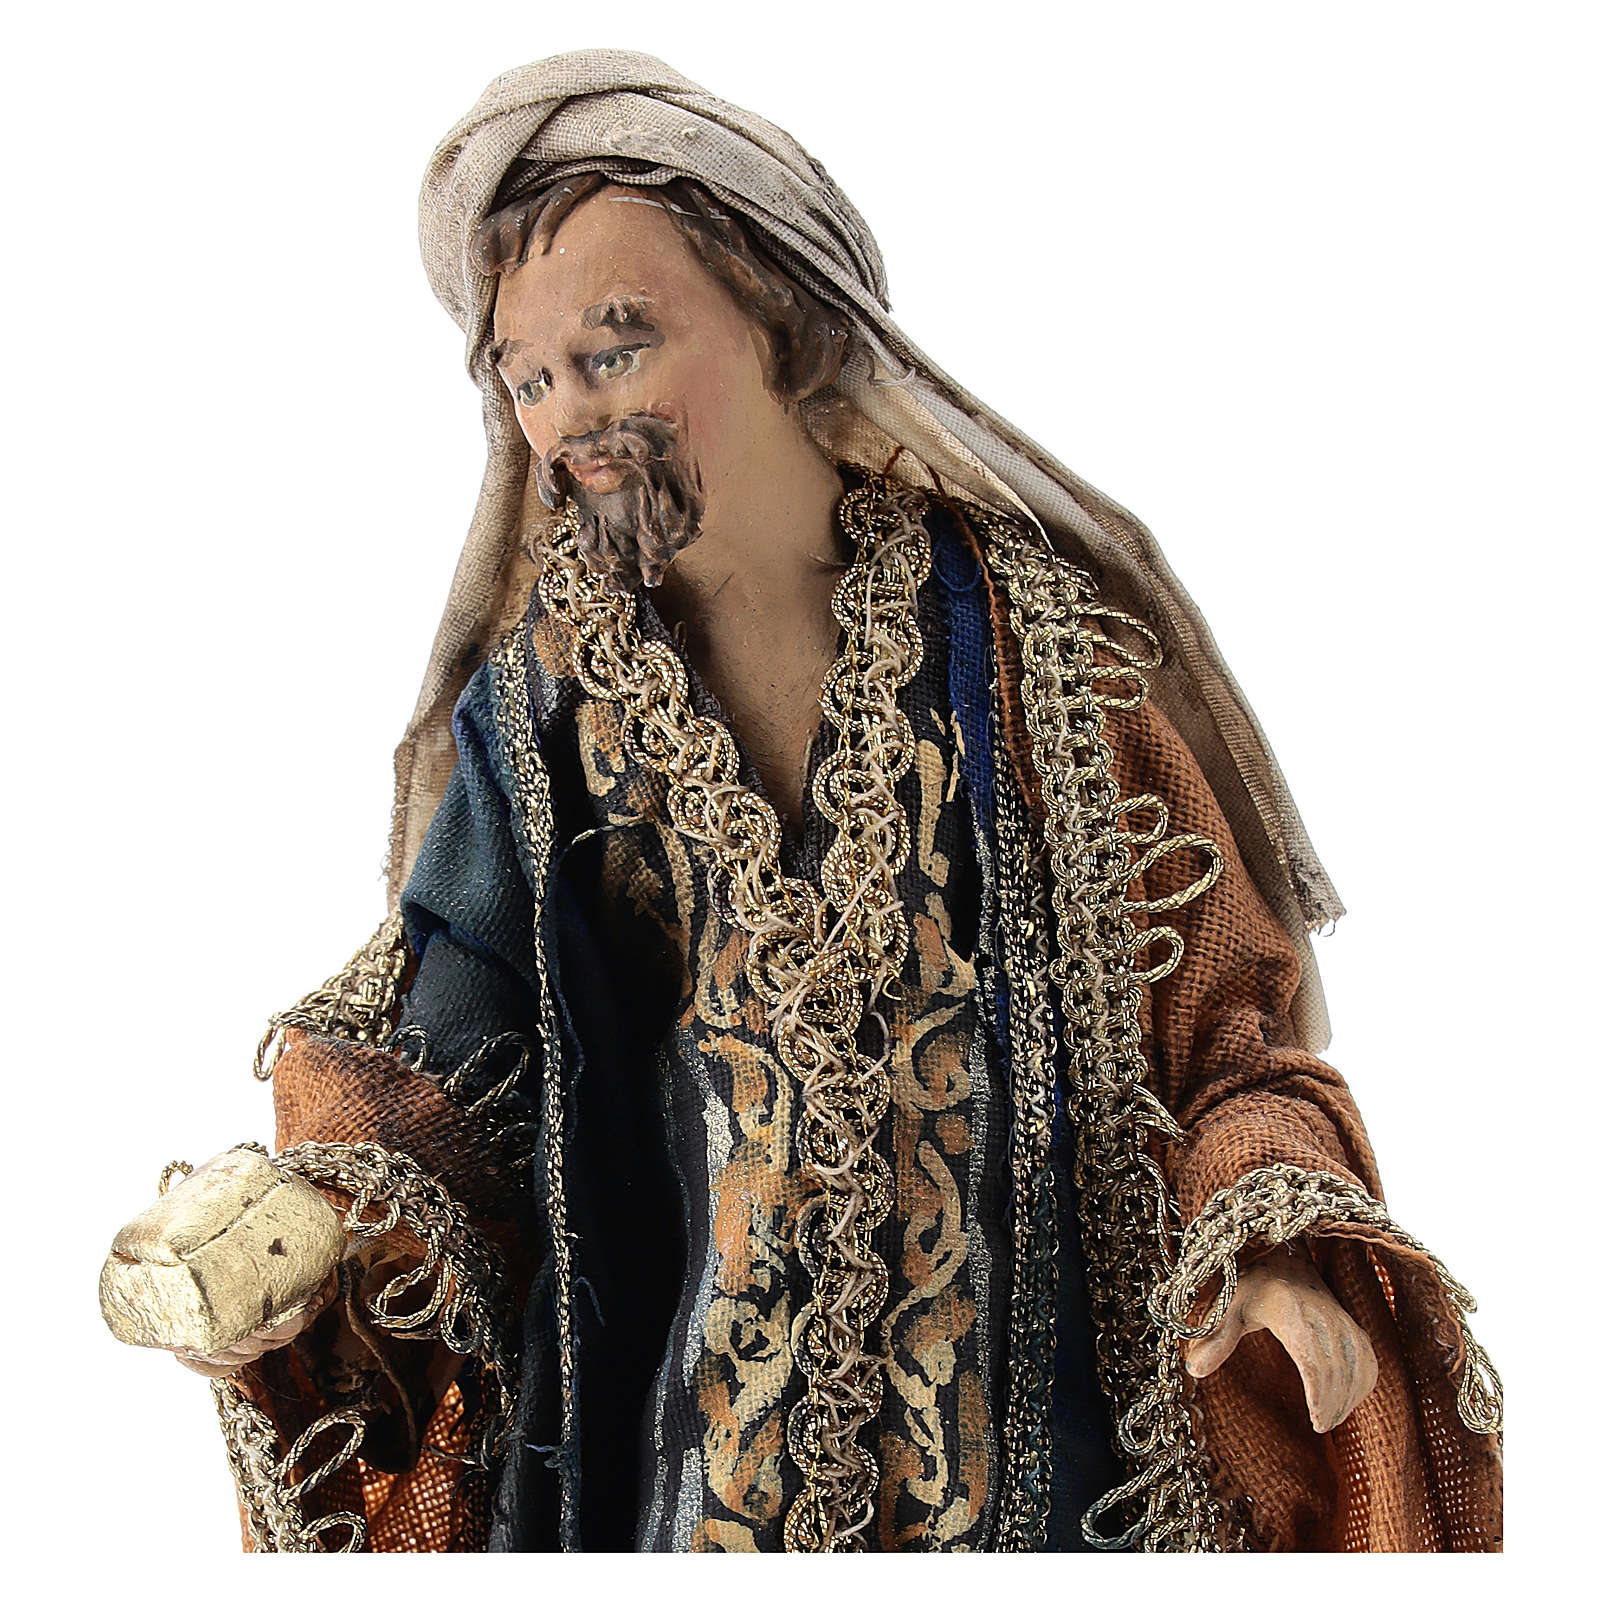 Nativity scene figurine, Magi King with coffer by Angela Tripi 13 cm 4